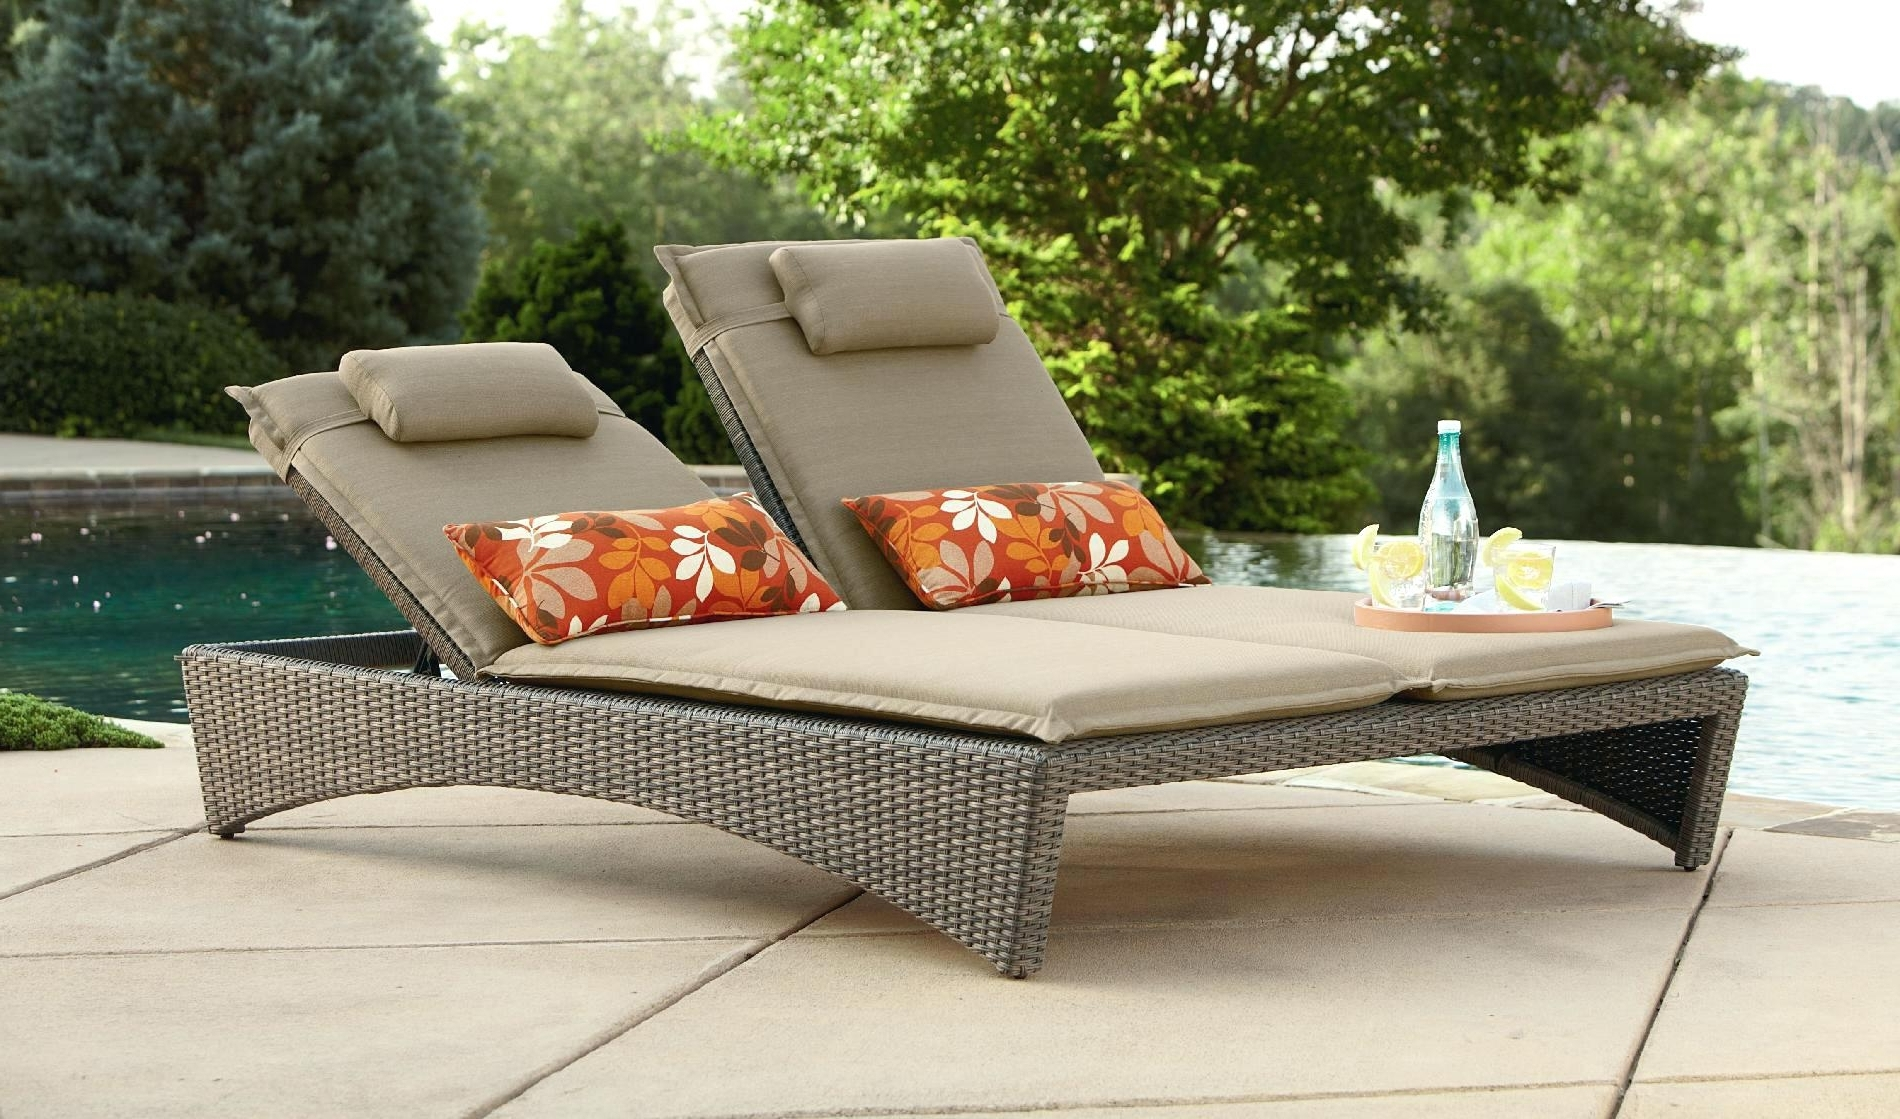 Outdoor Chaise Lounge Chairs Under 100 Awesome Chair For Two Intended For Widely Used Deck Chaise Lounge Chairs (View 7 of 15)